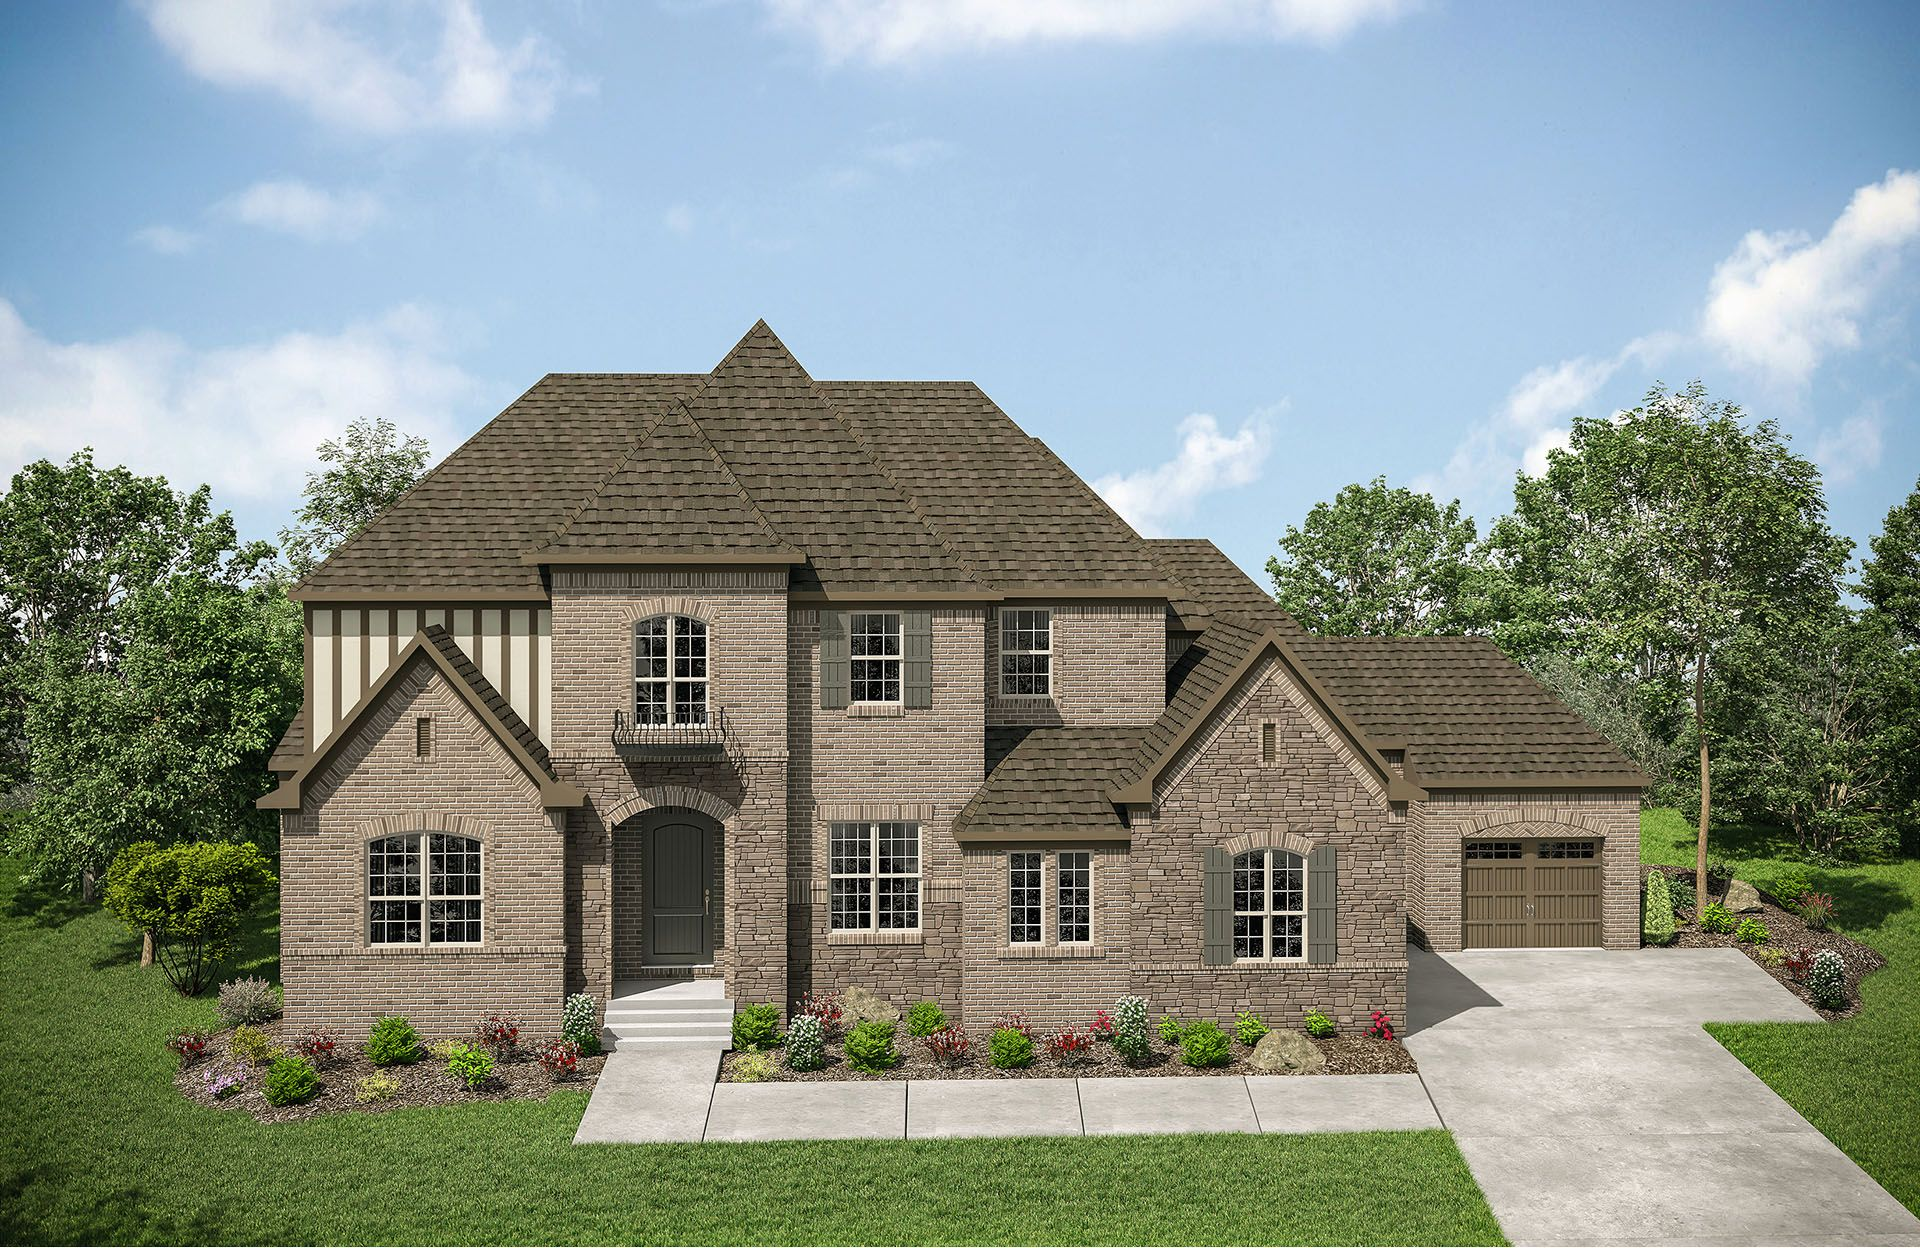 6029 blackwell lane franklin tn new home for sale 989 homegain